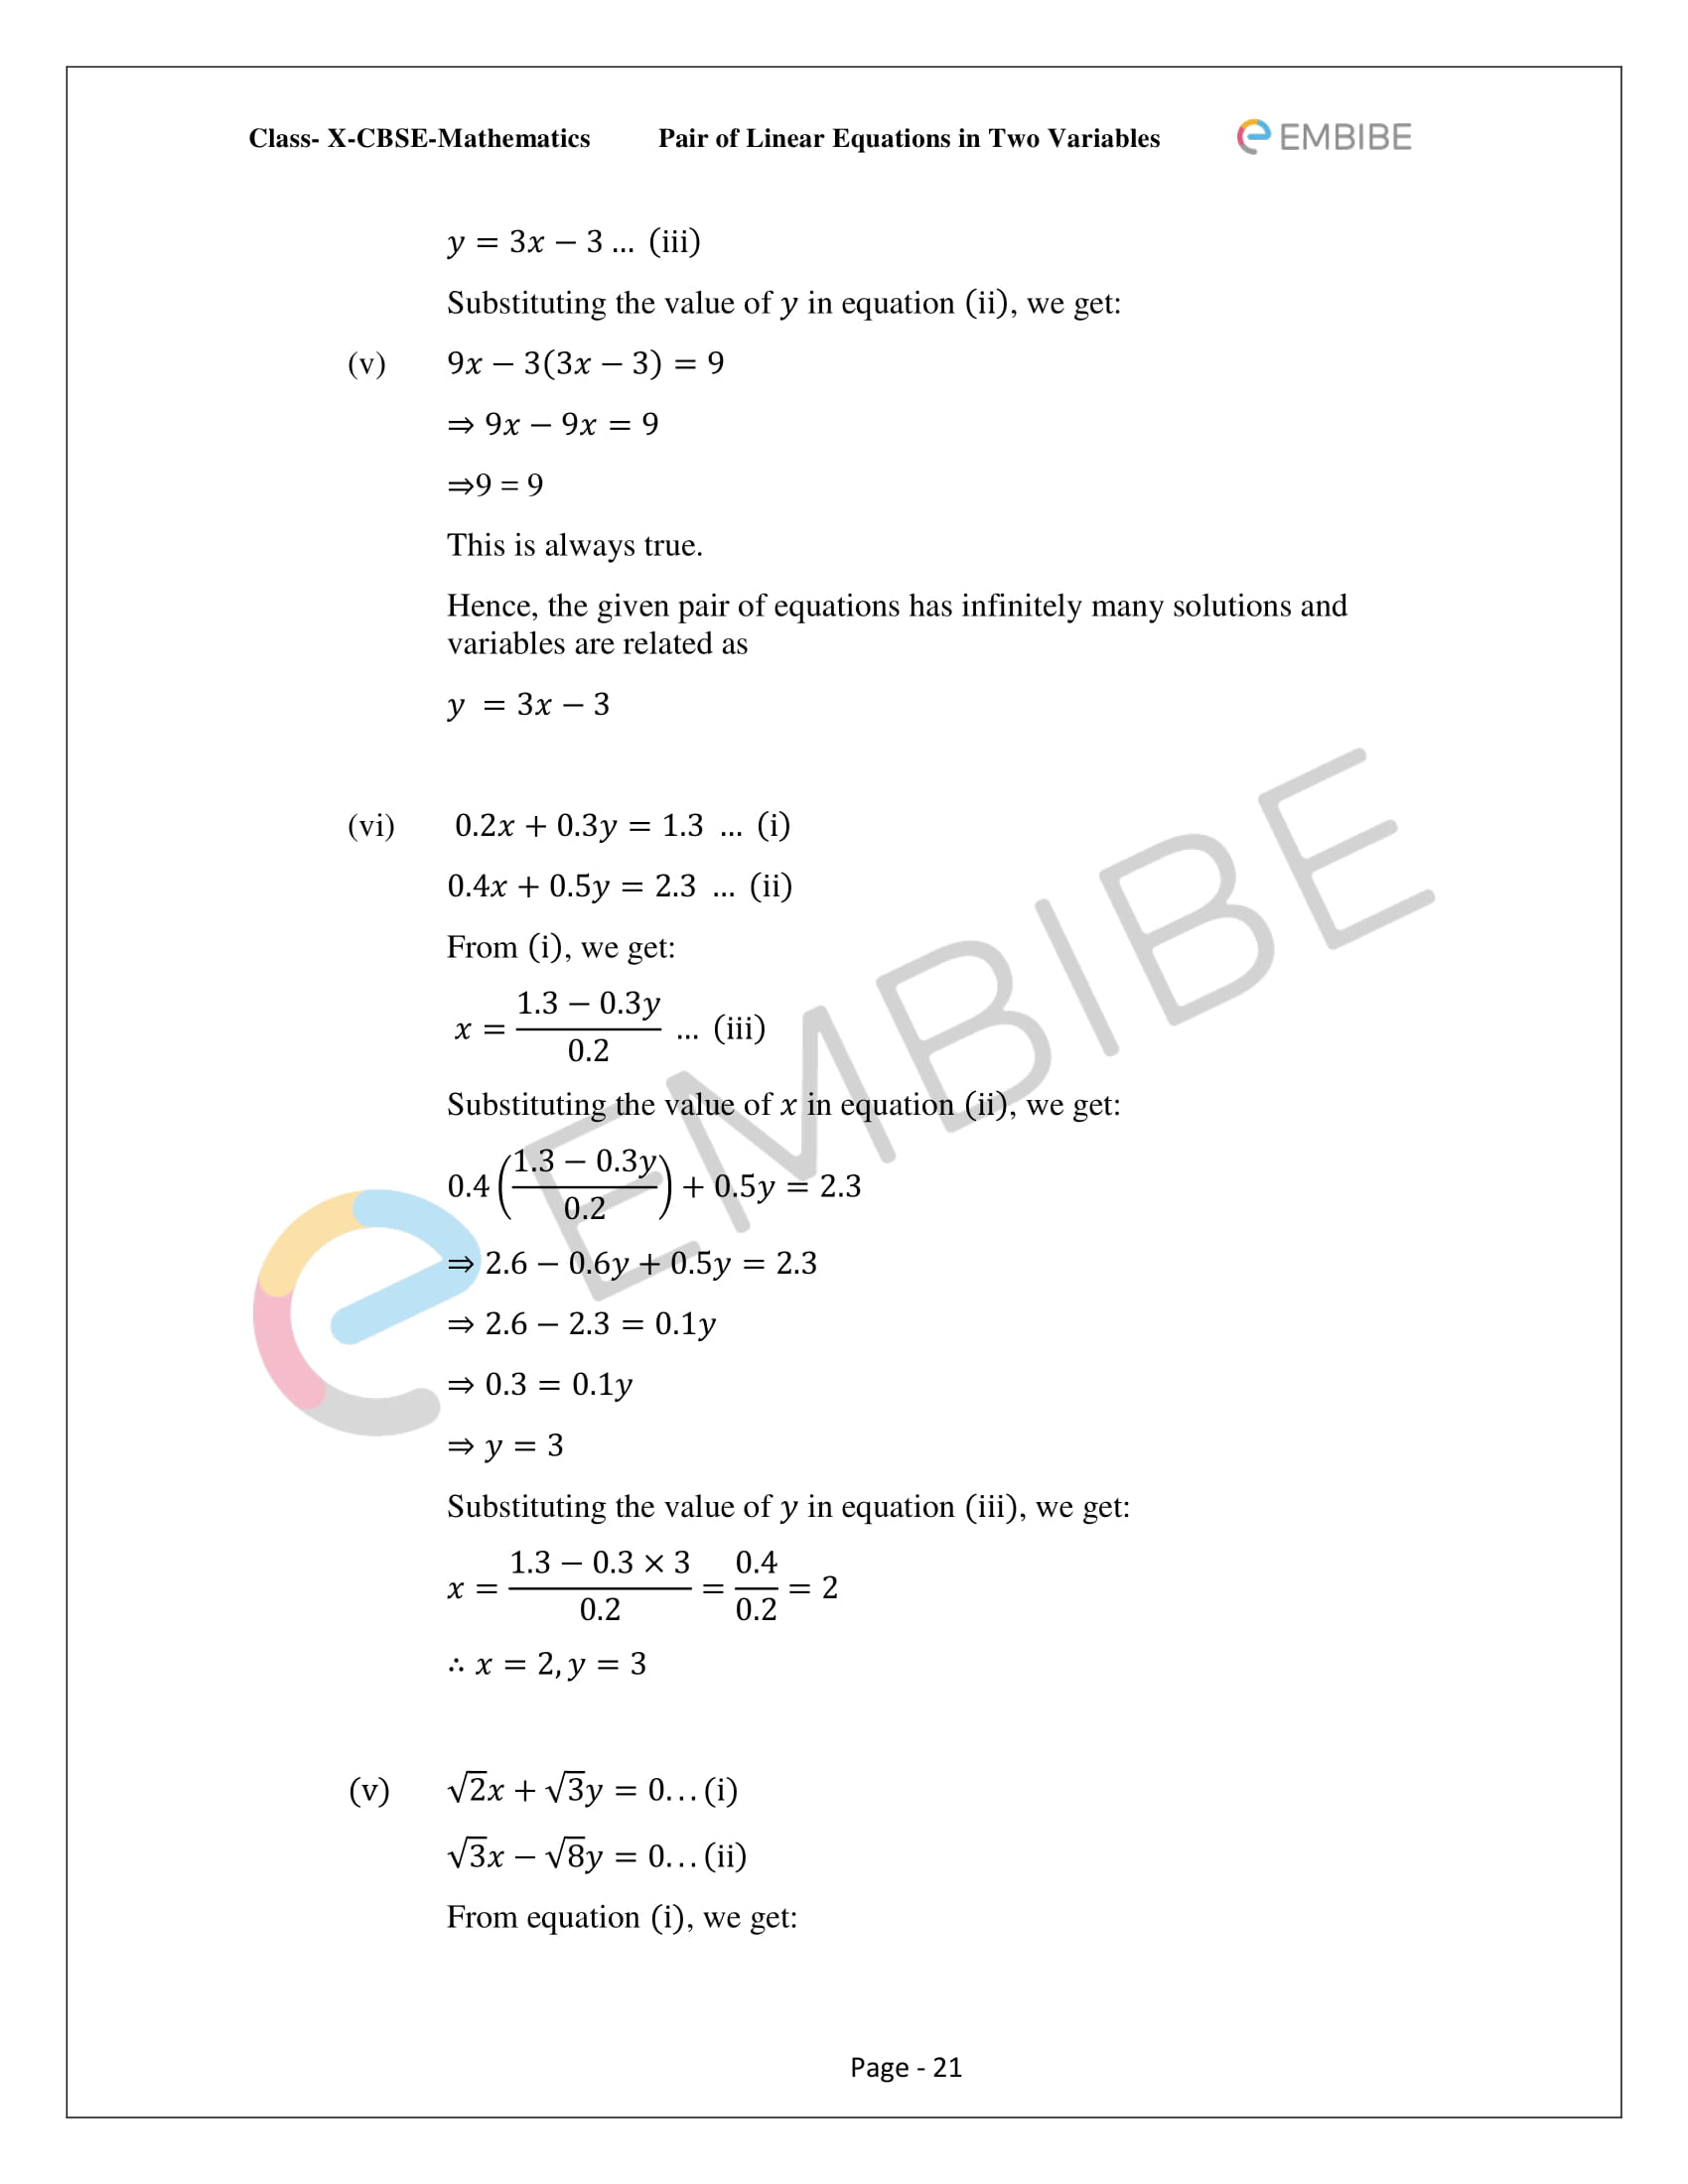 CBSE NCERT Solutions For Class 10 Maths Chapter 3 - Pair of Linear Equations In Two Variables - 21